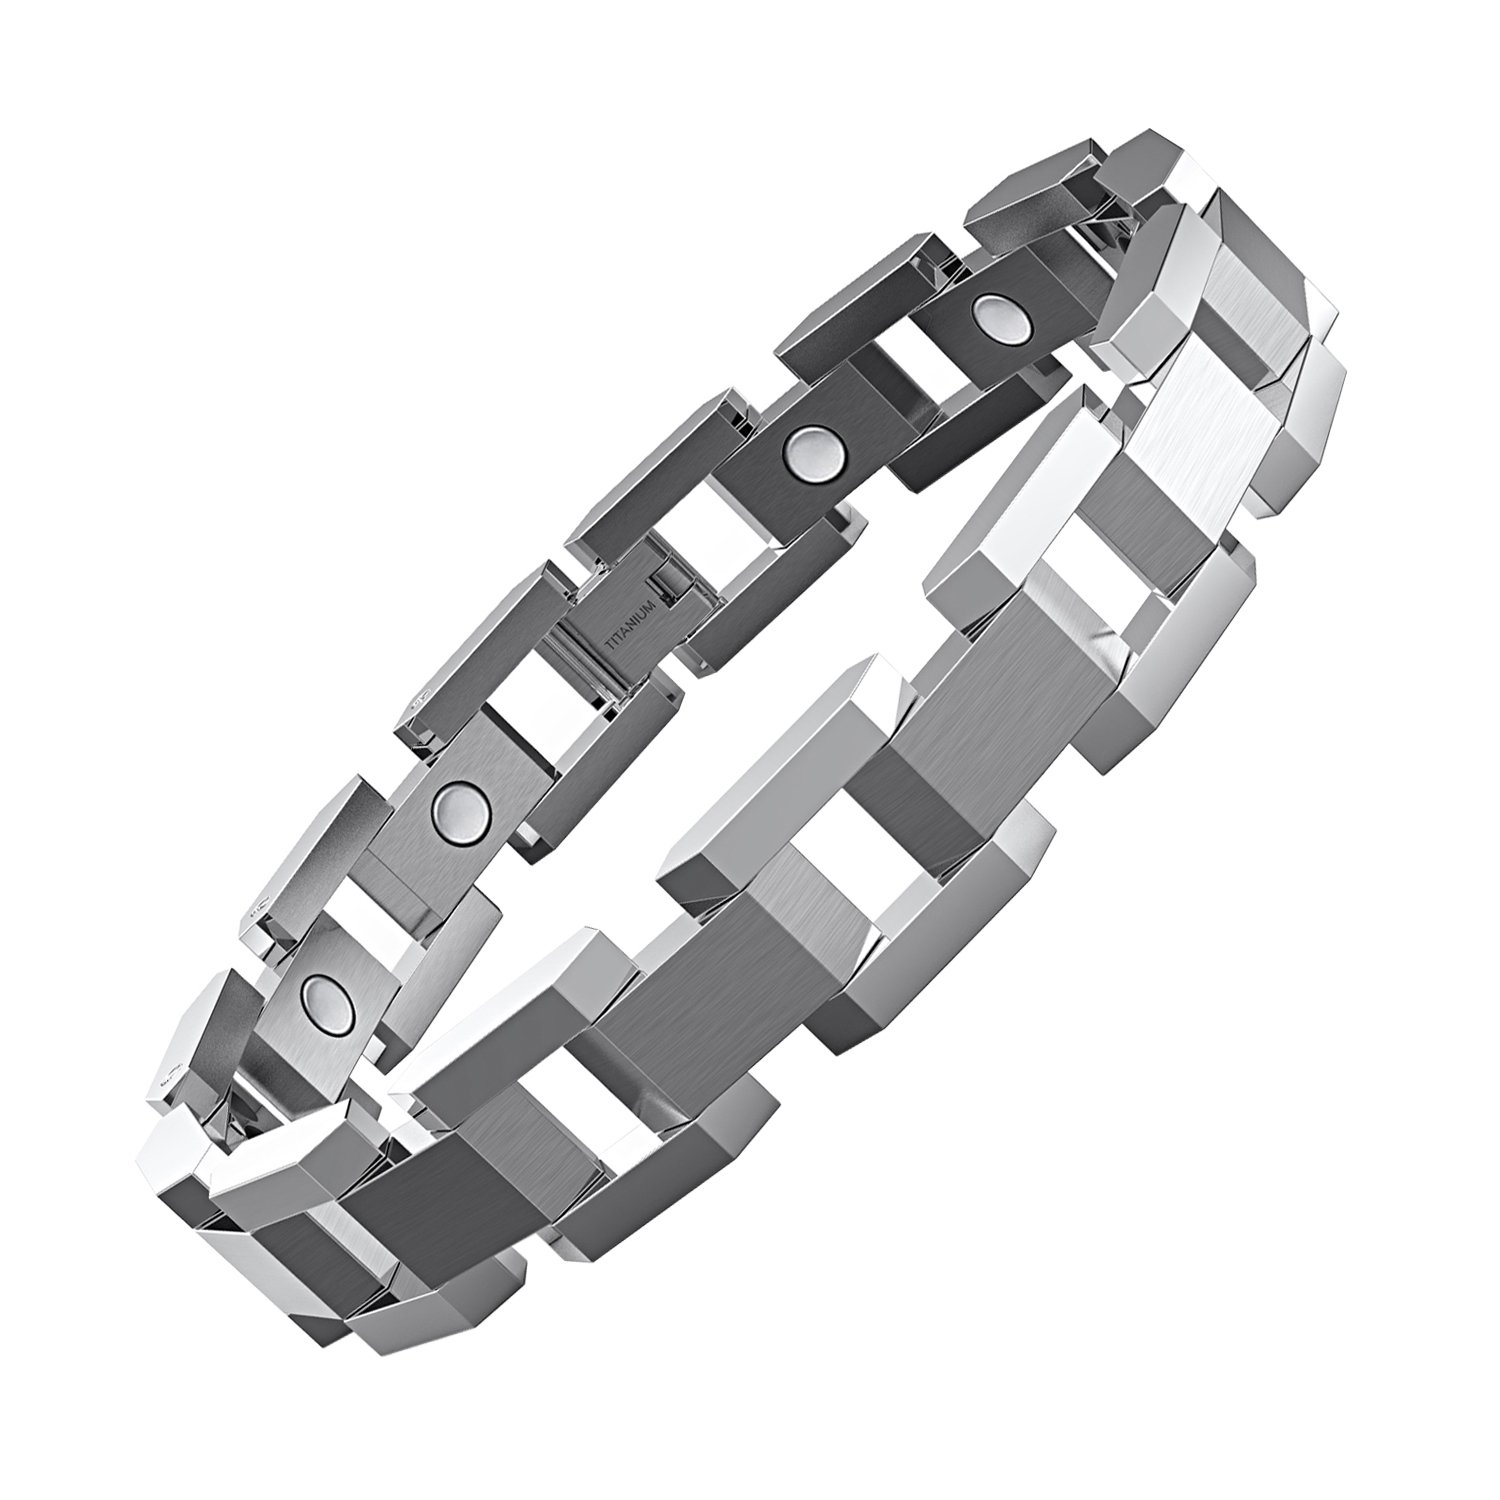 COOLMAN Titanium Magnetic Bracelet Adjustable Therapy Bracelet with Link Removal Tool CMB-2017-048-2